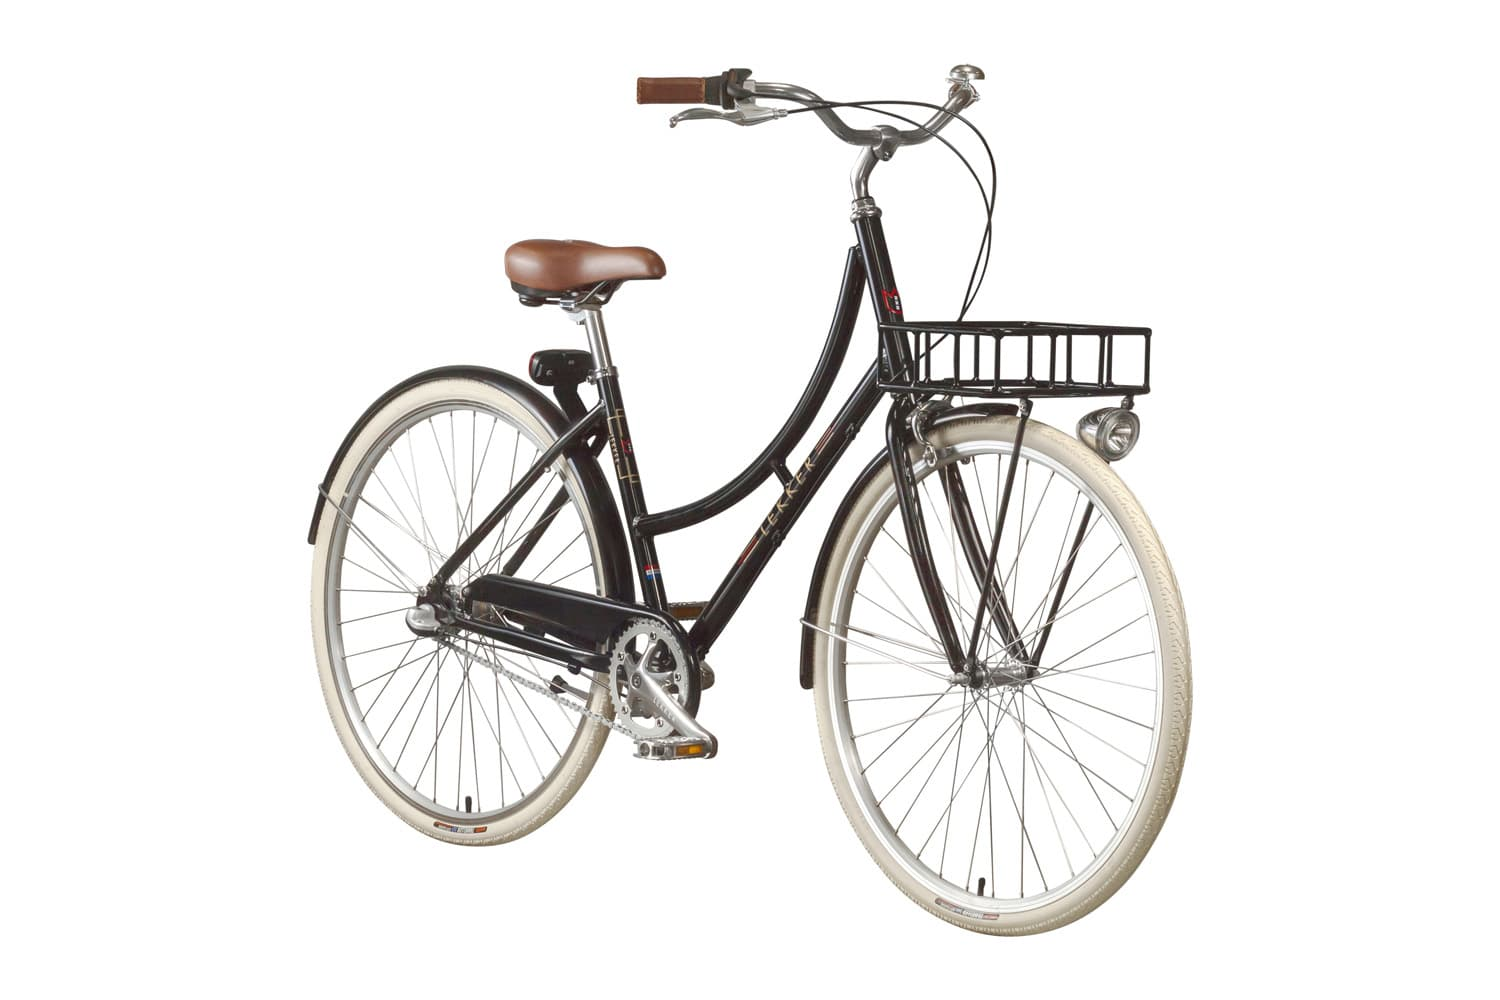 Lekker Sportief Classic Black Premium Dutch Bike Retro Vintage Bike